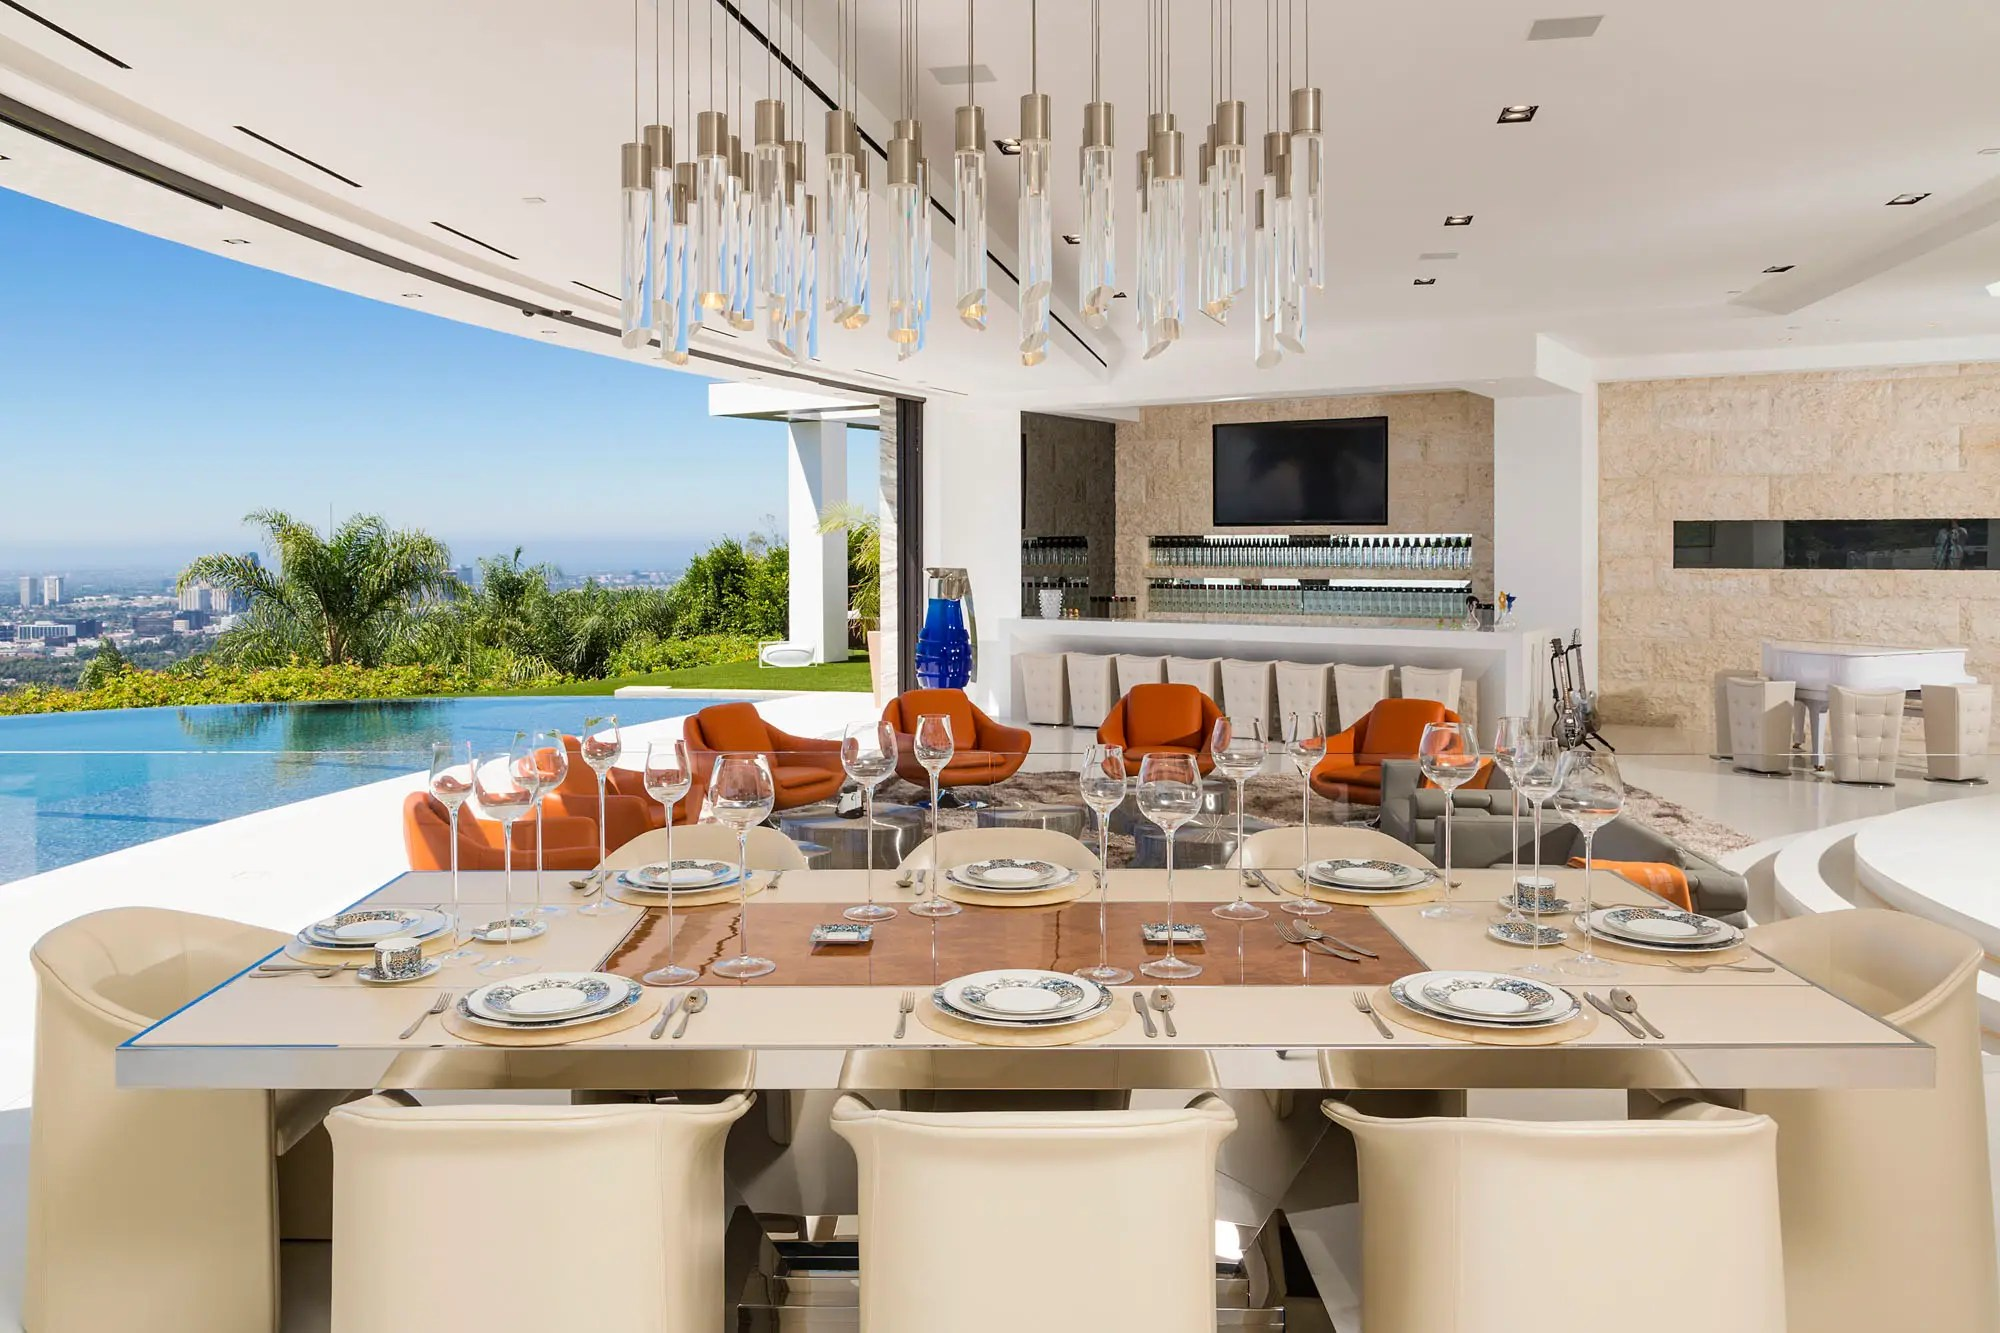 The dining room can easily fit eight guests. The home was designed for entertaining.